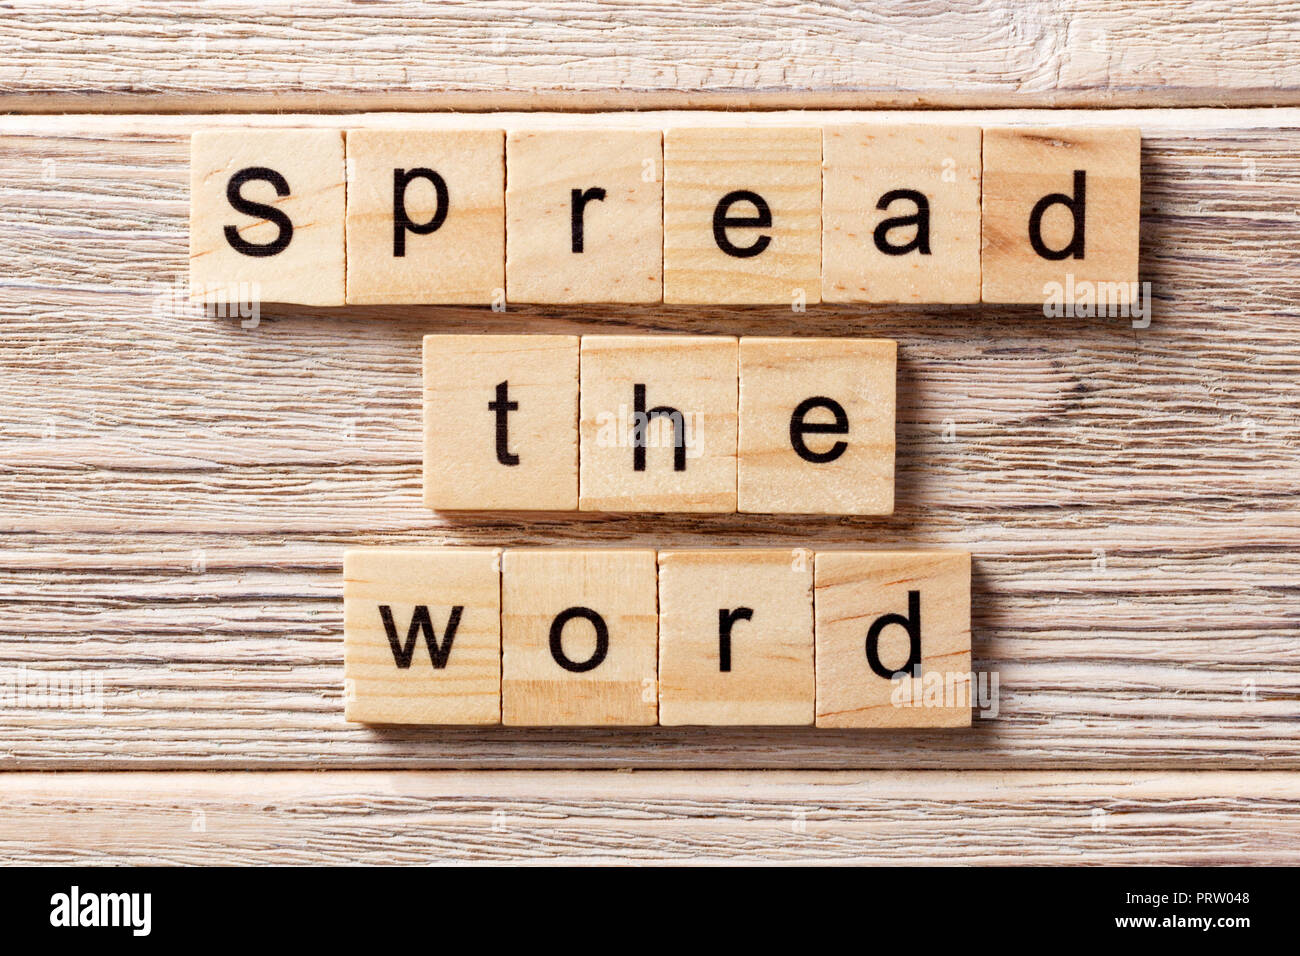 Spread the word word written on wood block. Spread the word text on table, concept. - Stock Image